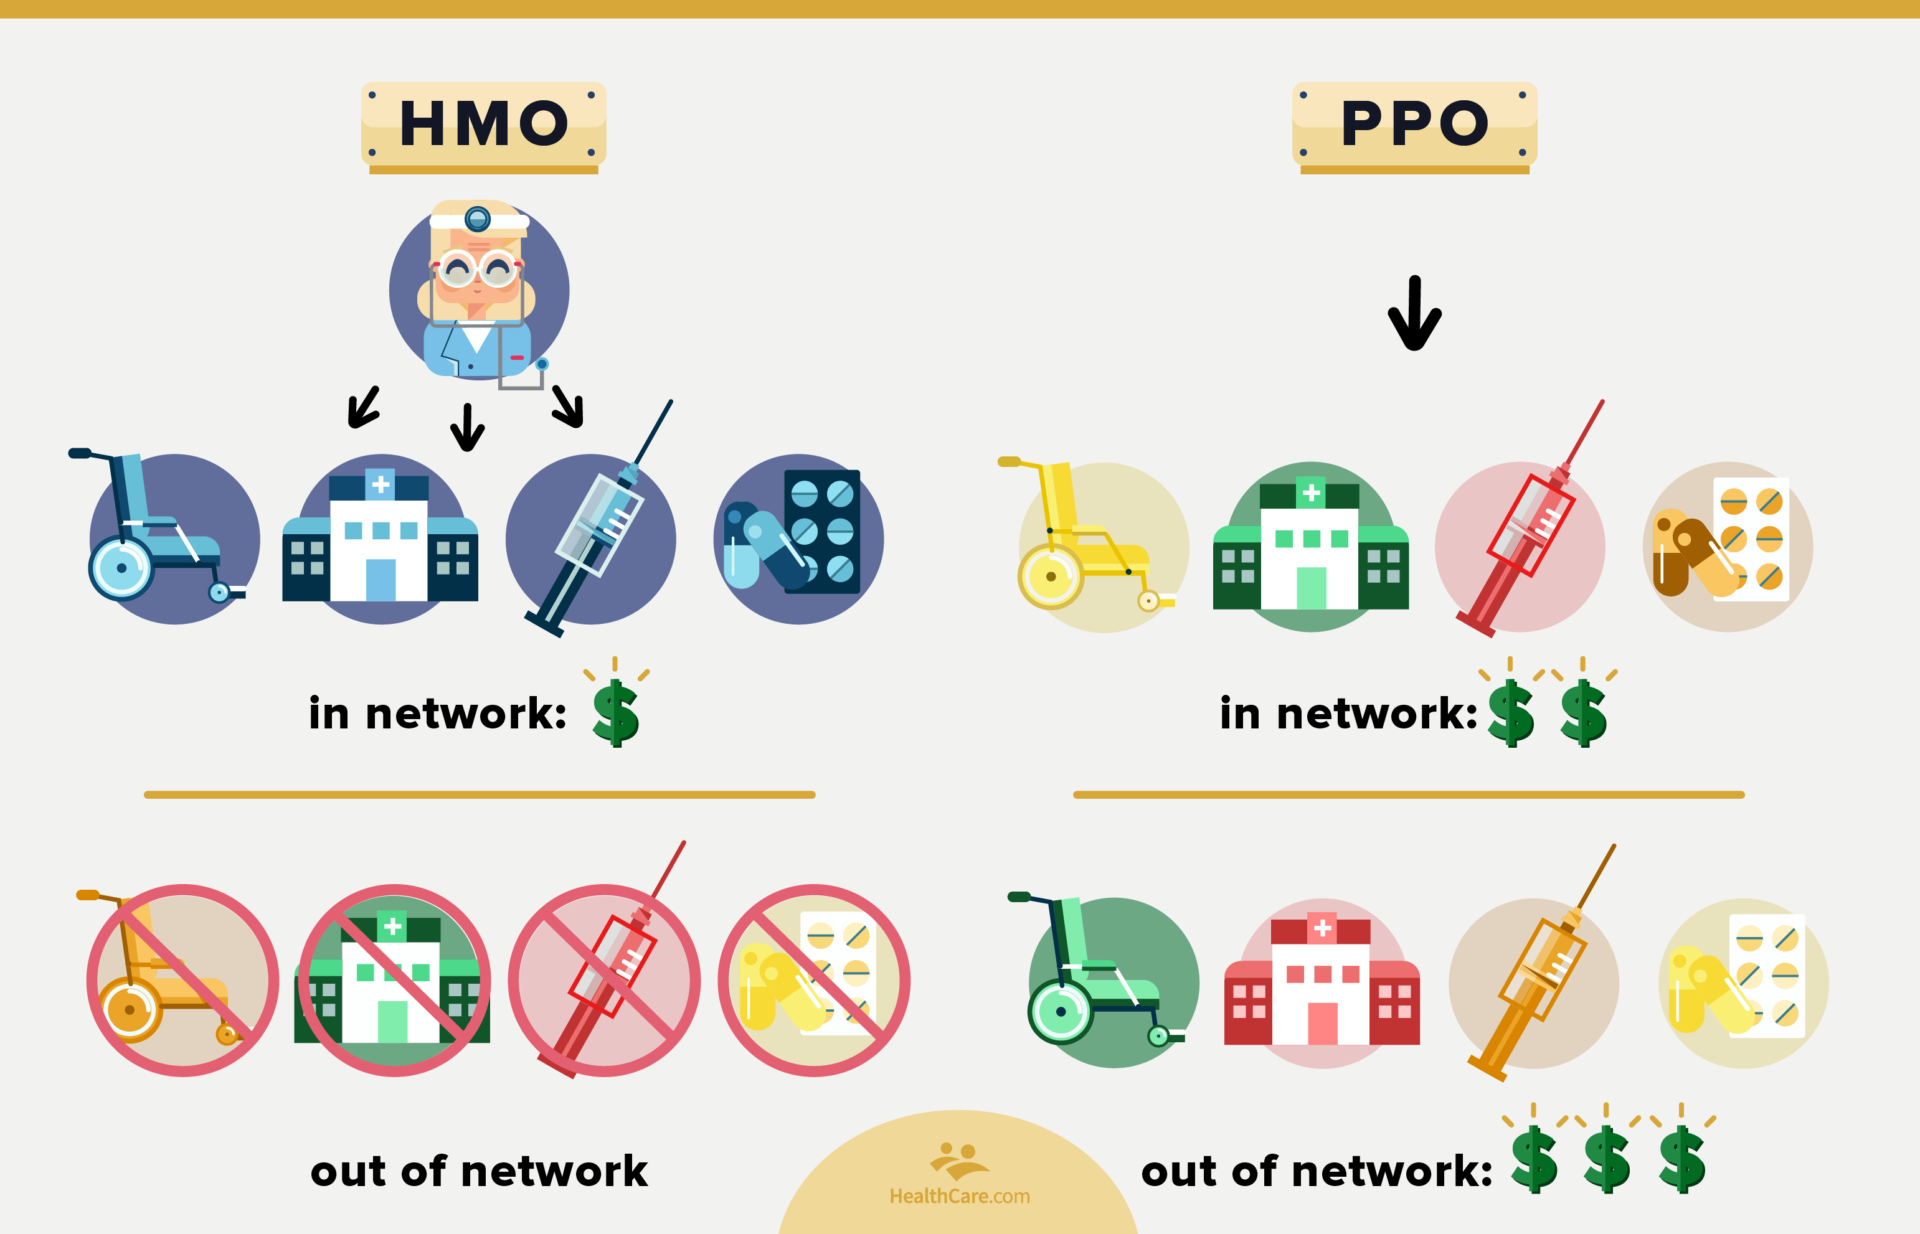 comparison of ppo and hmo network types